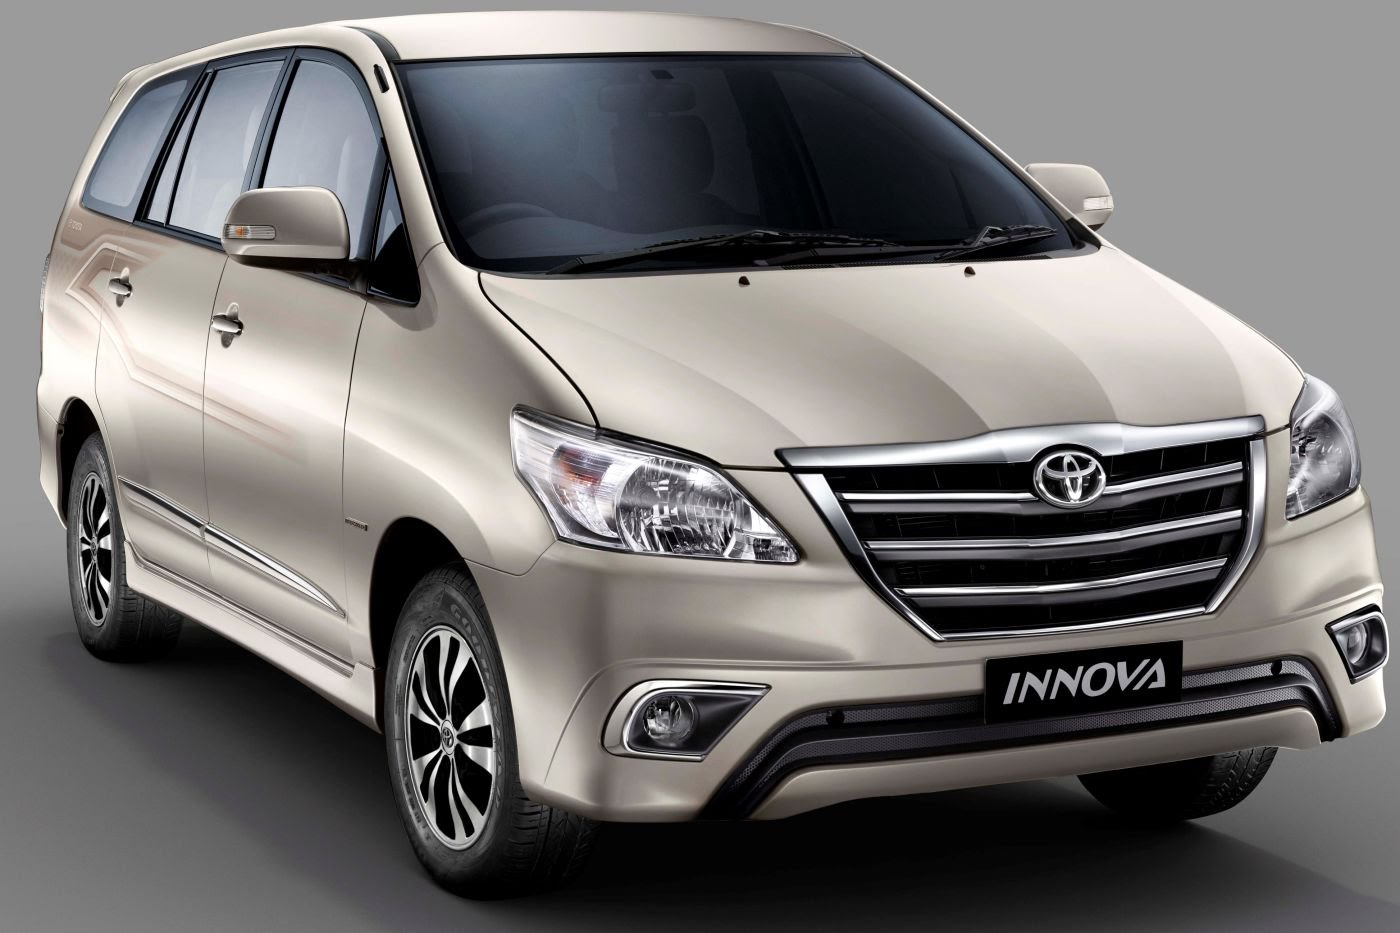 private innova car.jpg